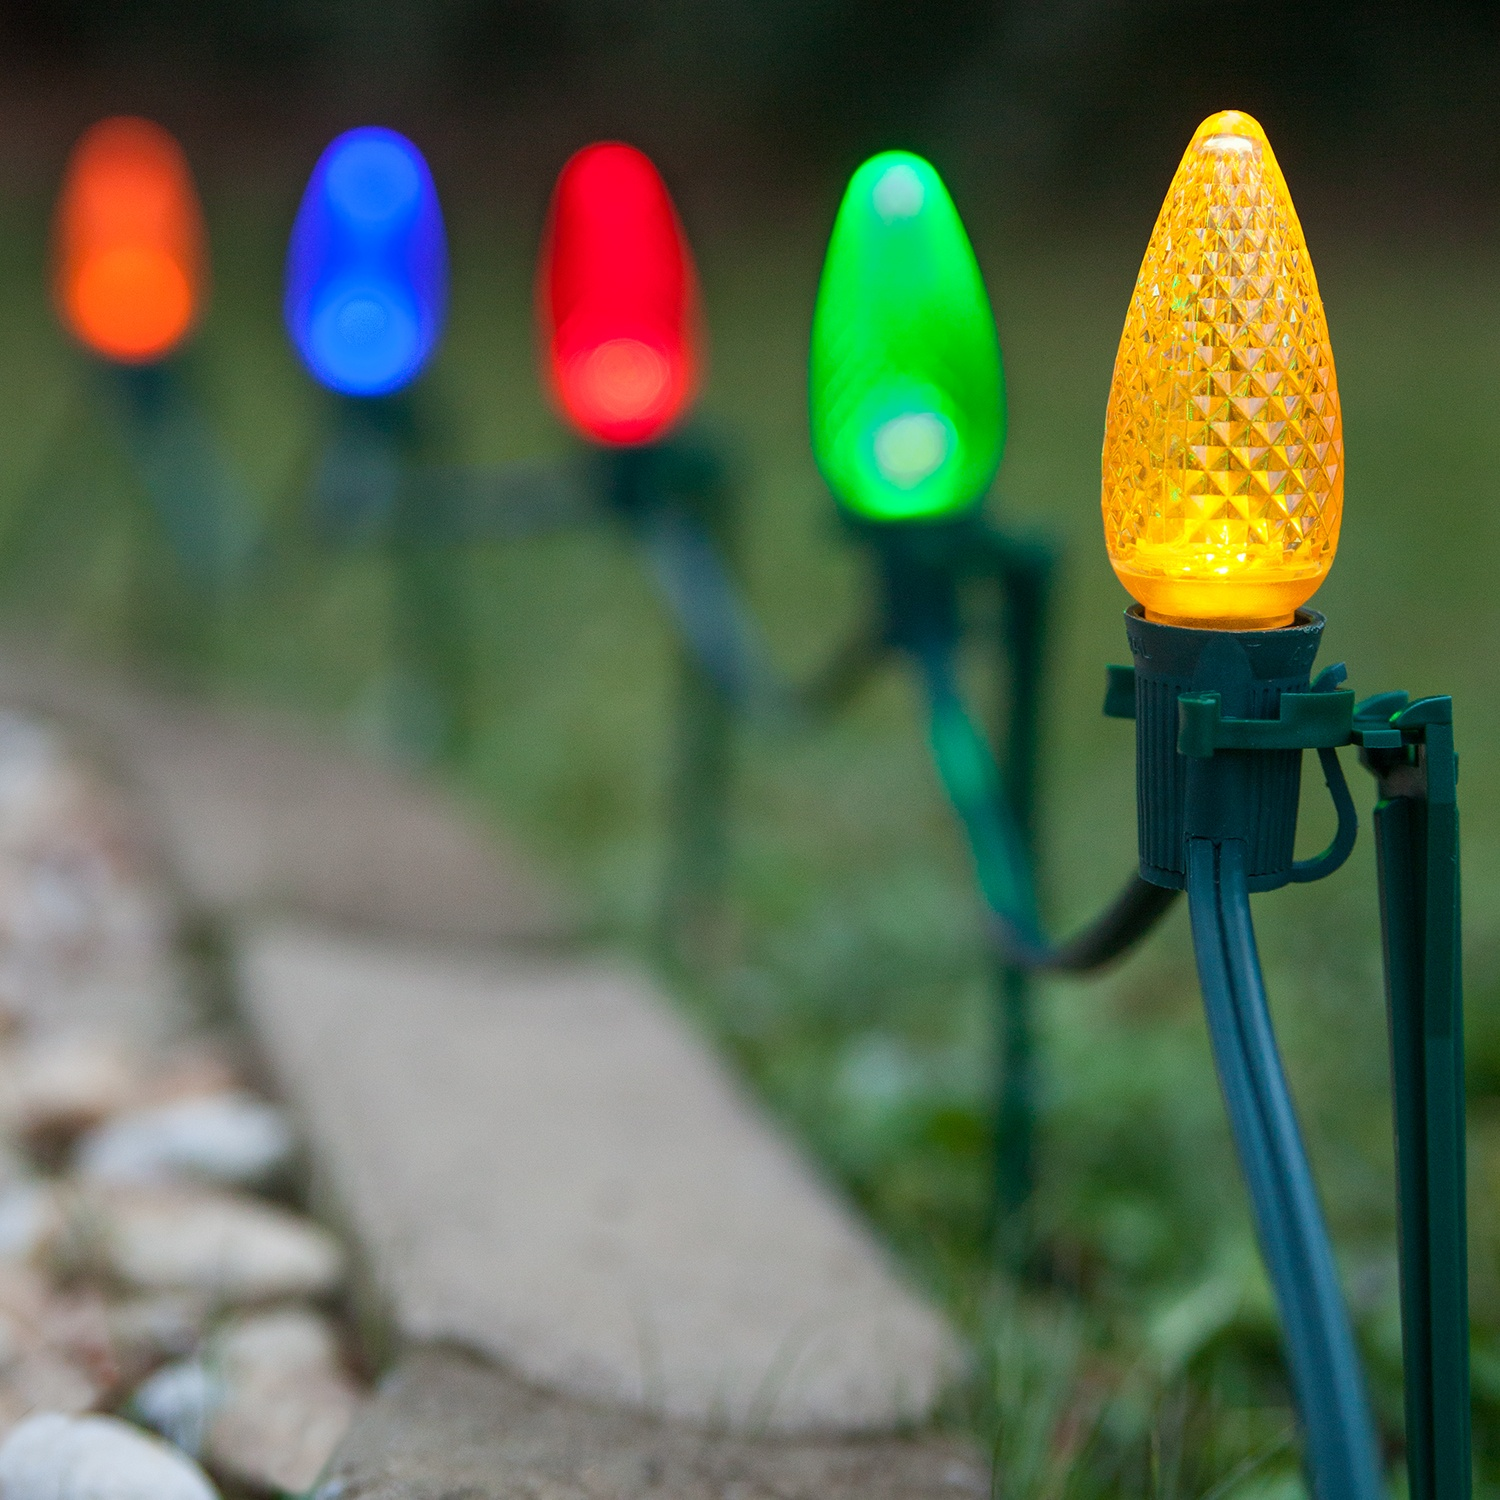 Christmas Lights - C9 Multicolor Christmas LED Pathway Lights